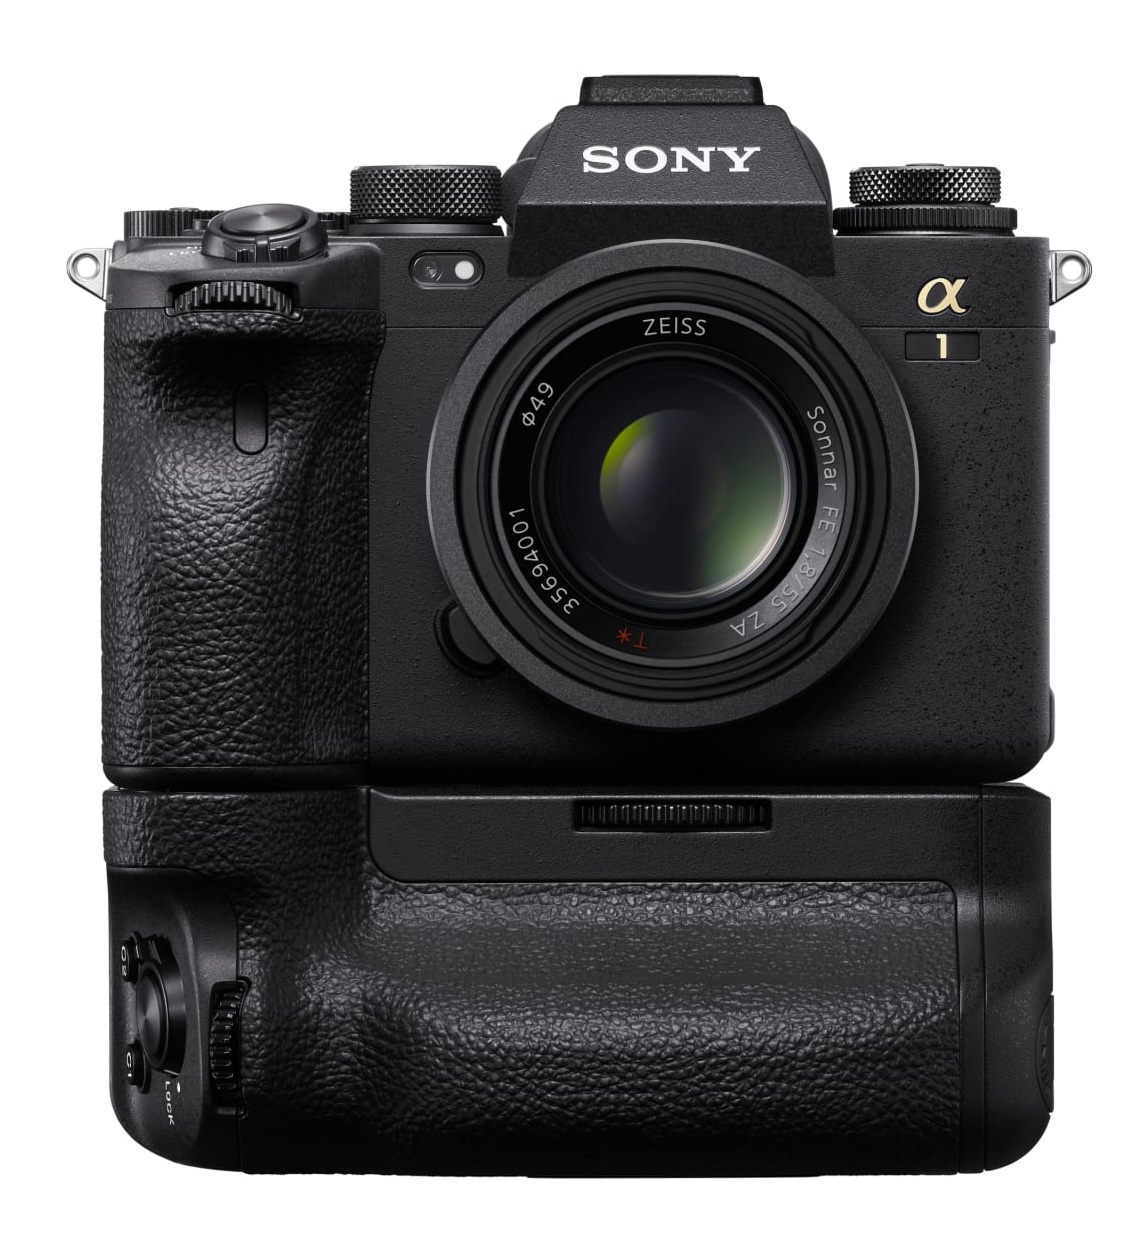 Sony A1 and overheating in 8K video recording - what is the status?